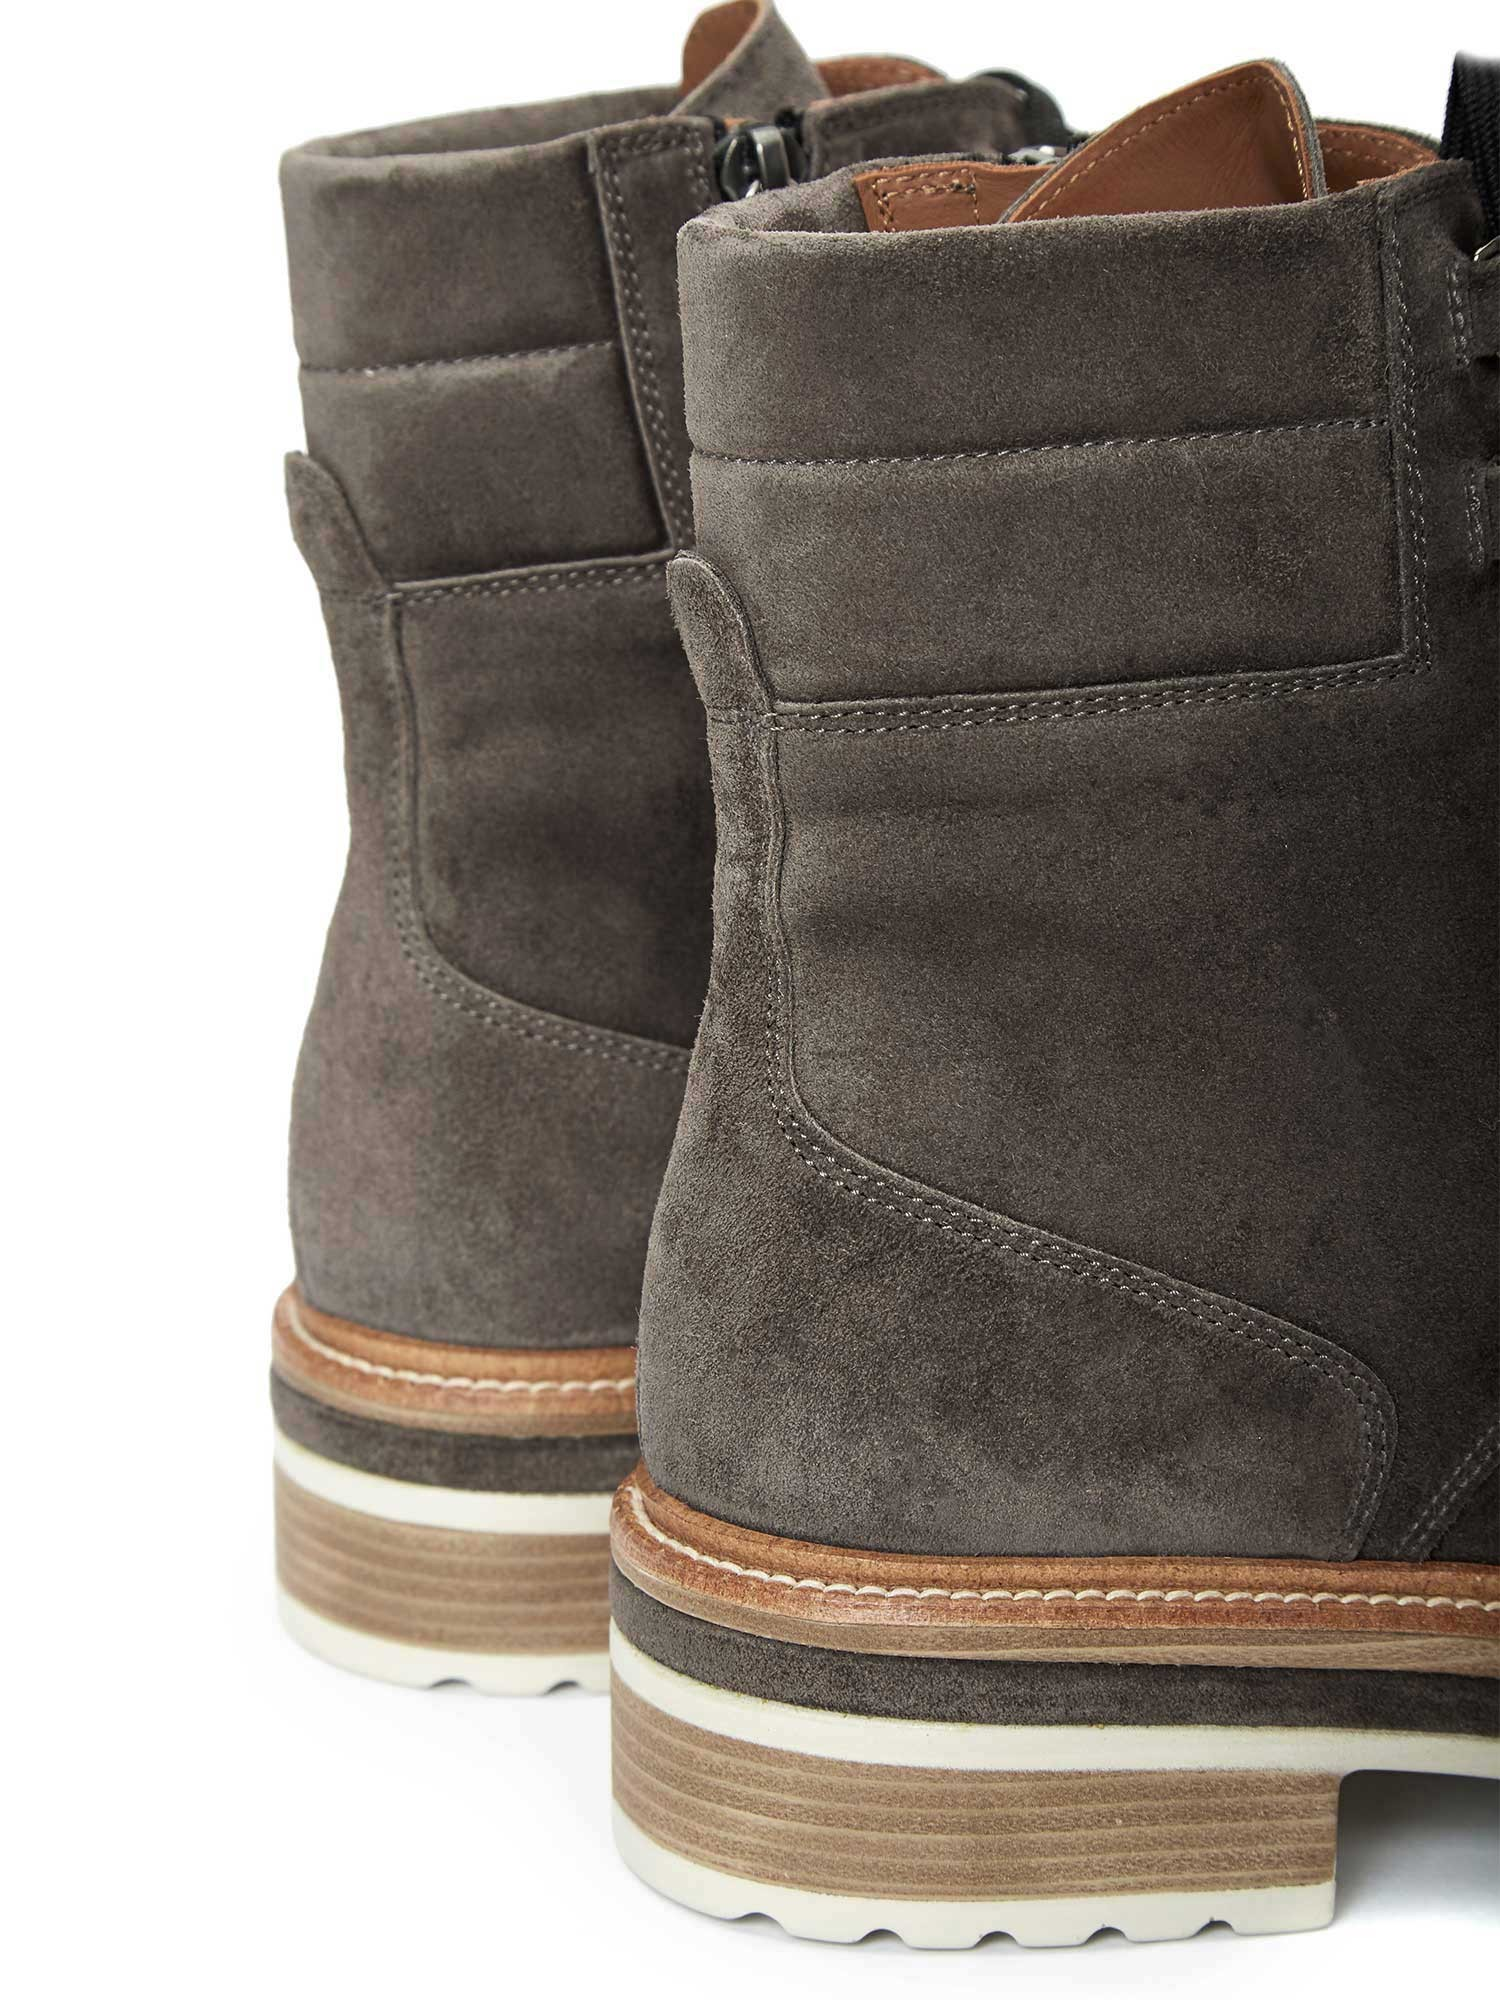 ANDREA VELOUR ANTHRACITE ANKLE BOOT